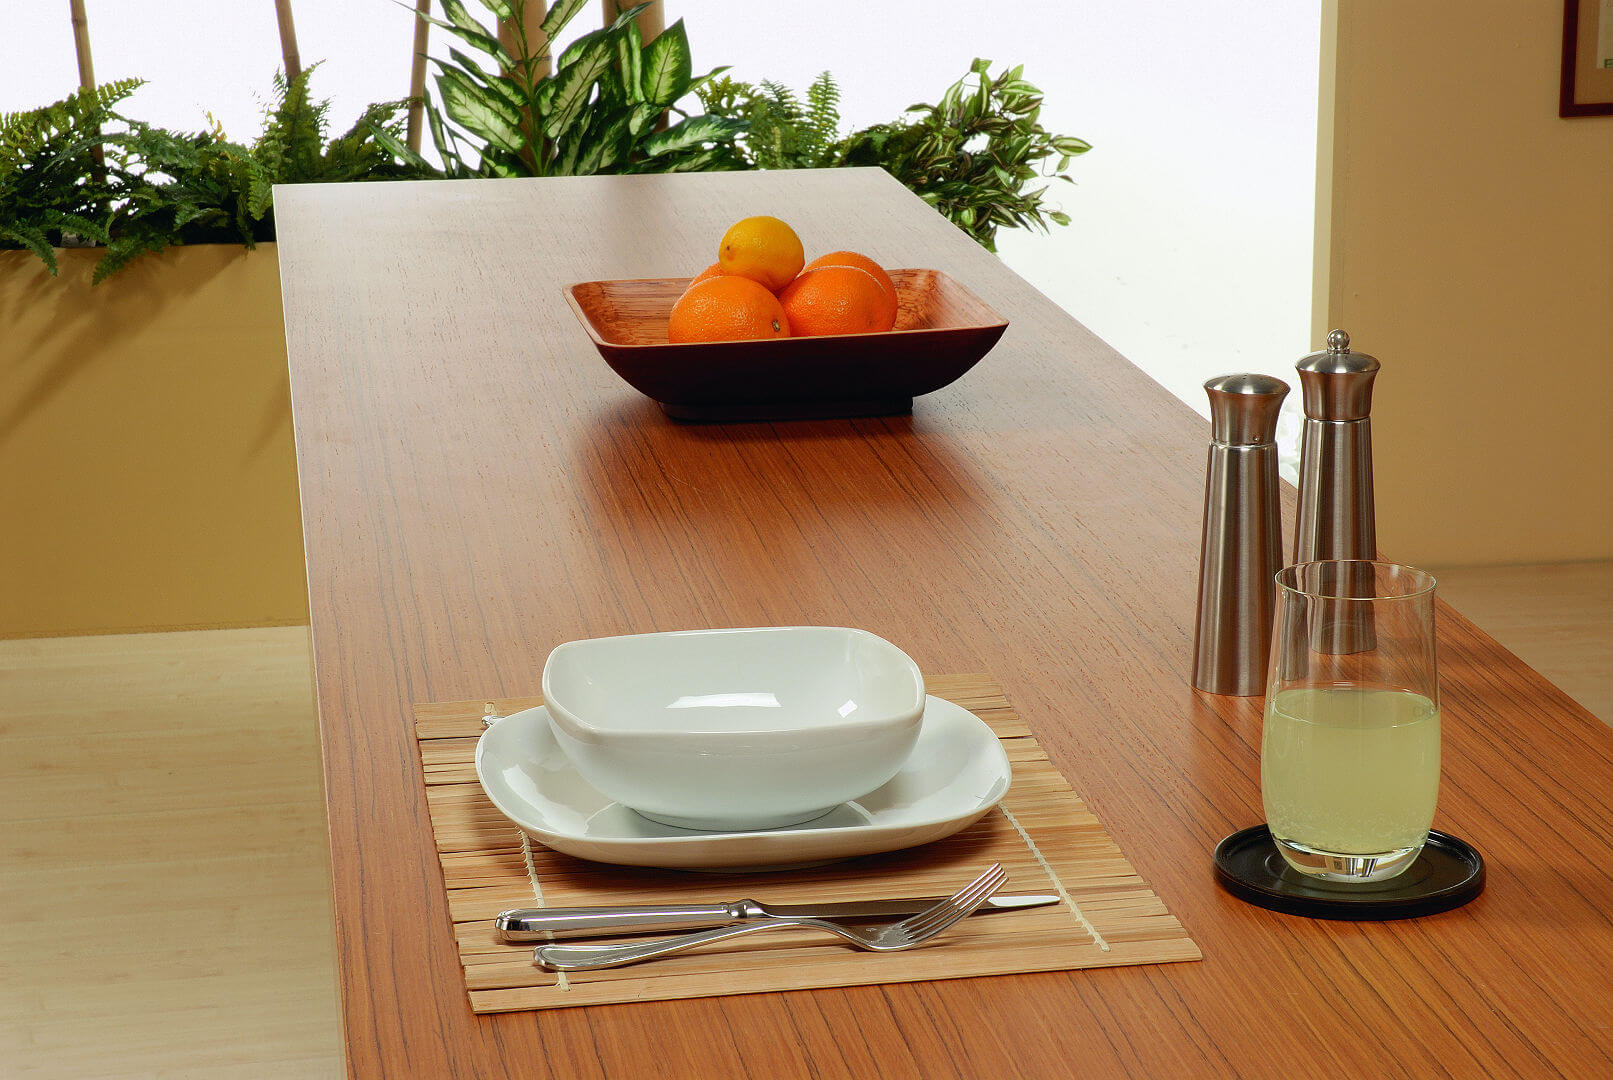 Arca Cucine Italy - Kitchen maid in stainless steel and teak - Elle